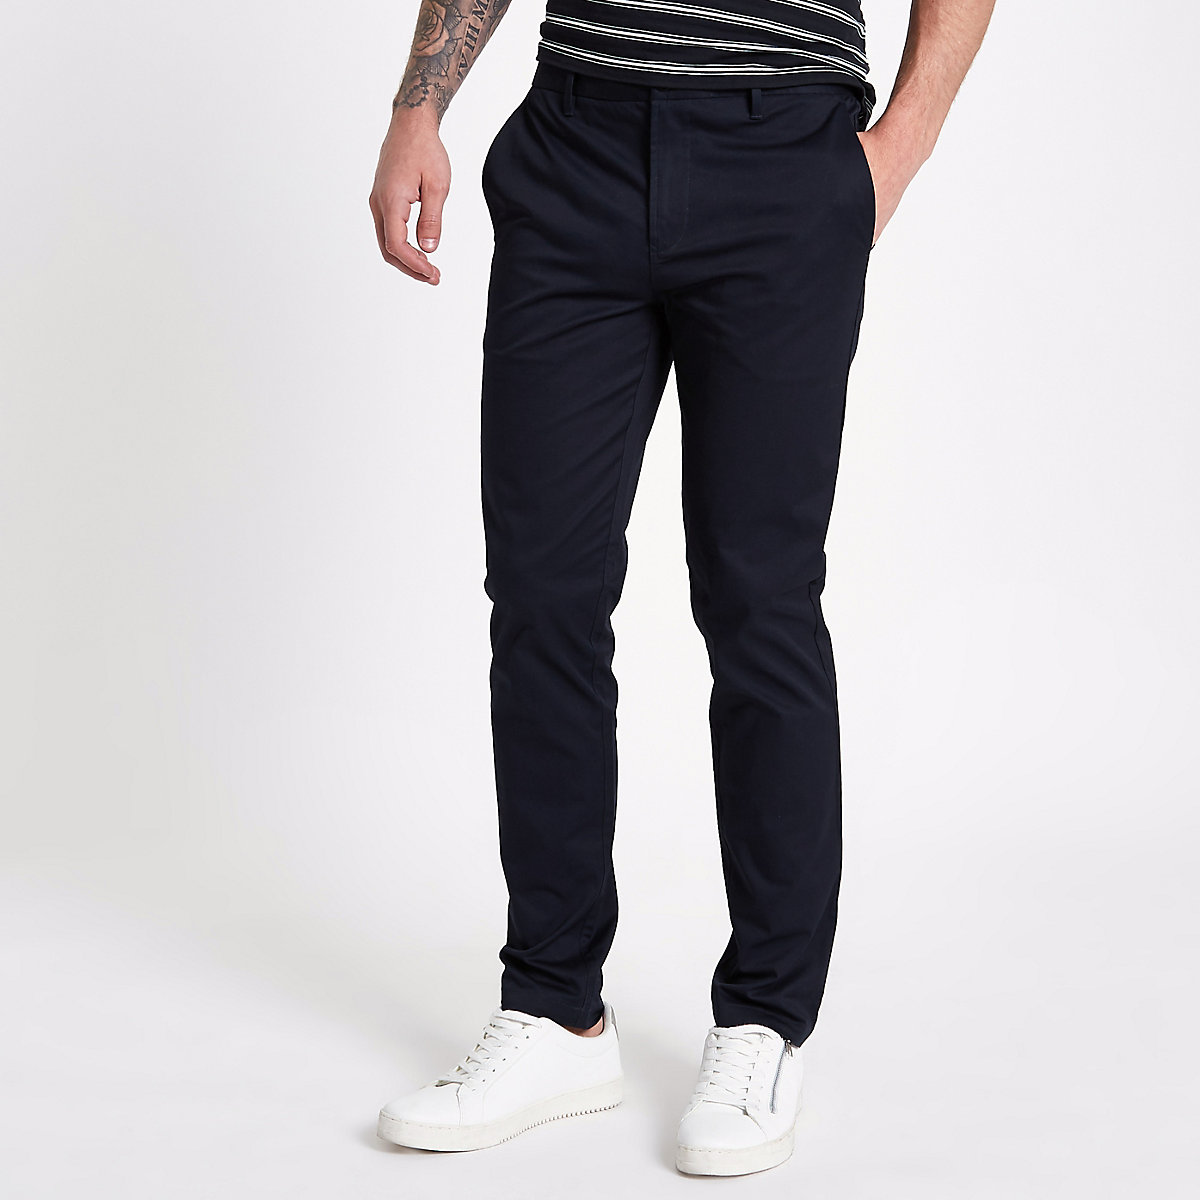 50d14c58d9076e Navy slim fit chino trousers - Chinos - Trousers - men